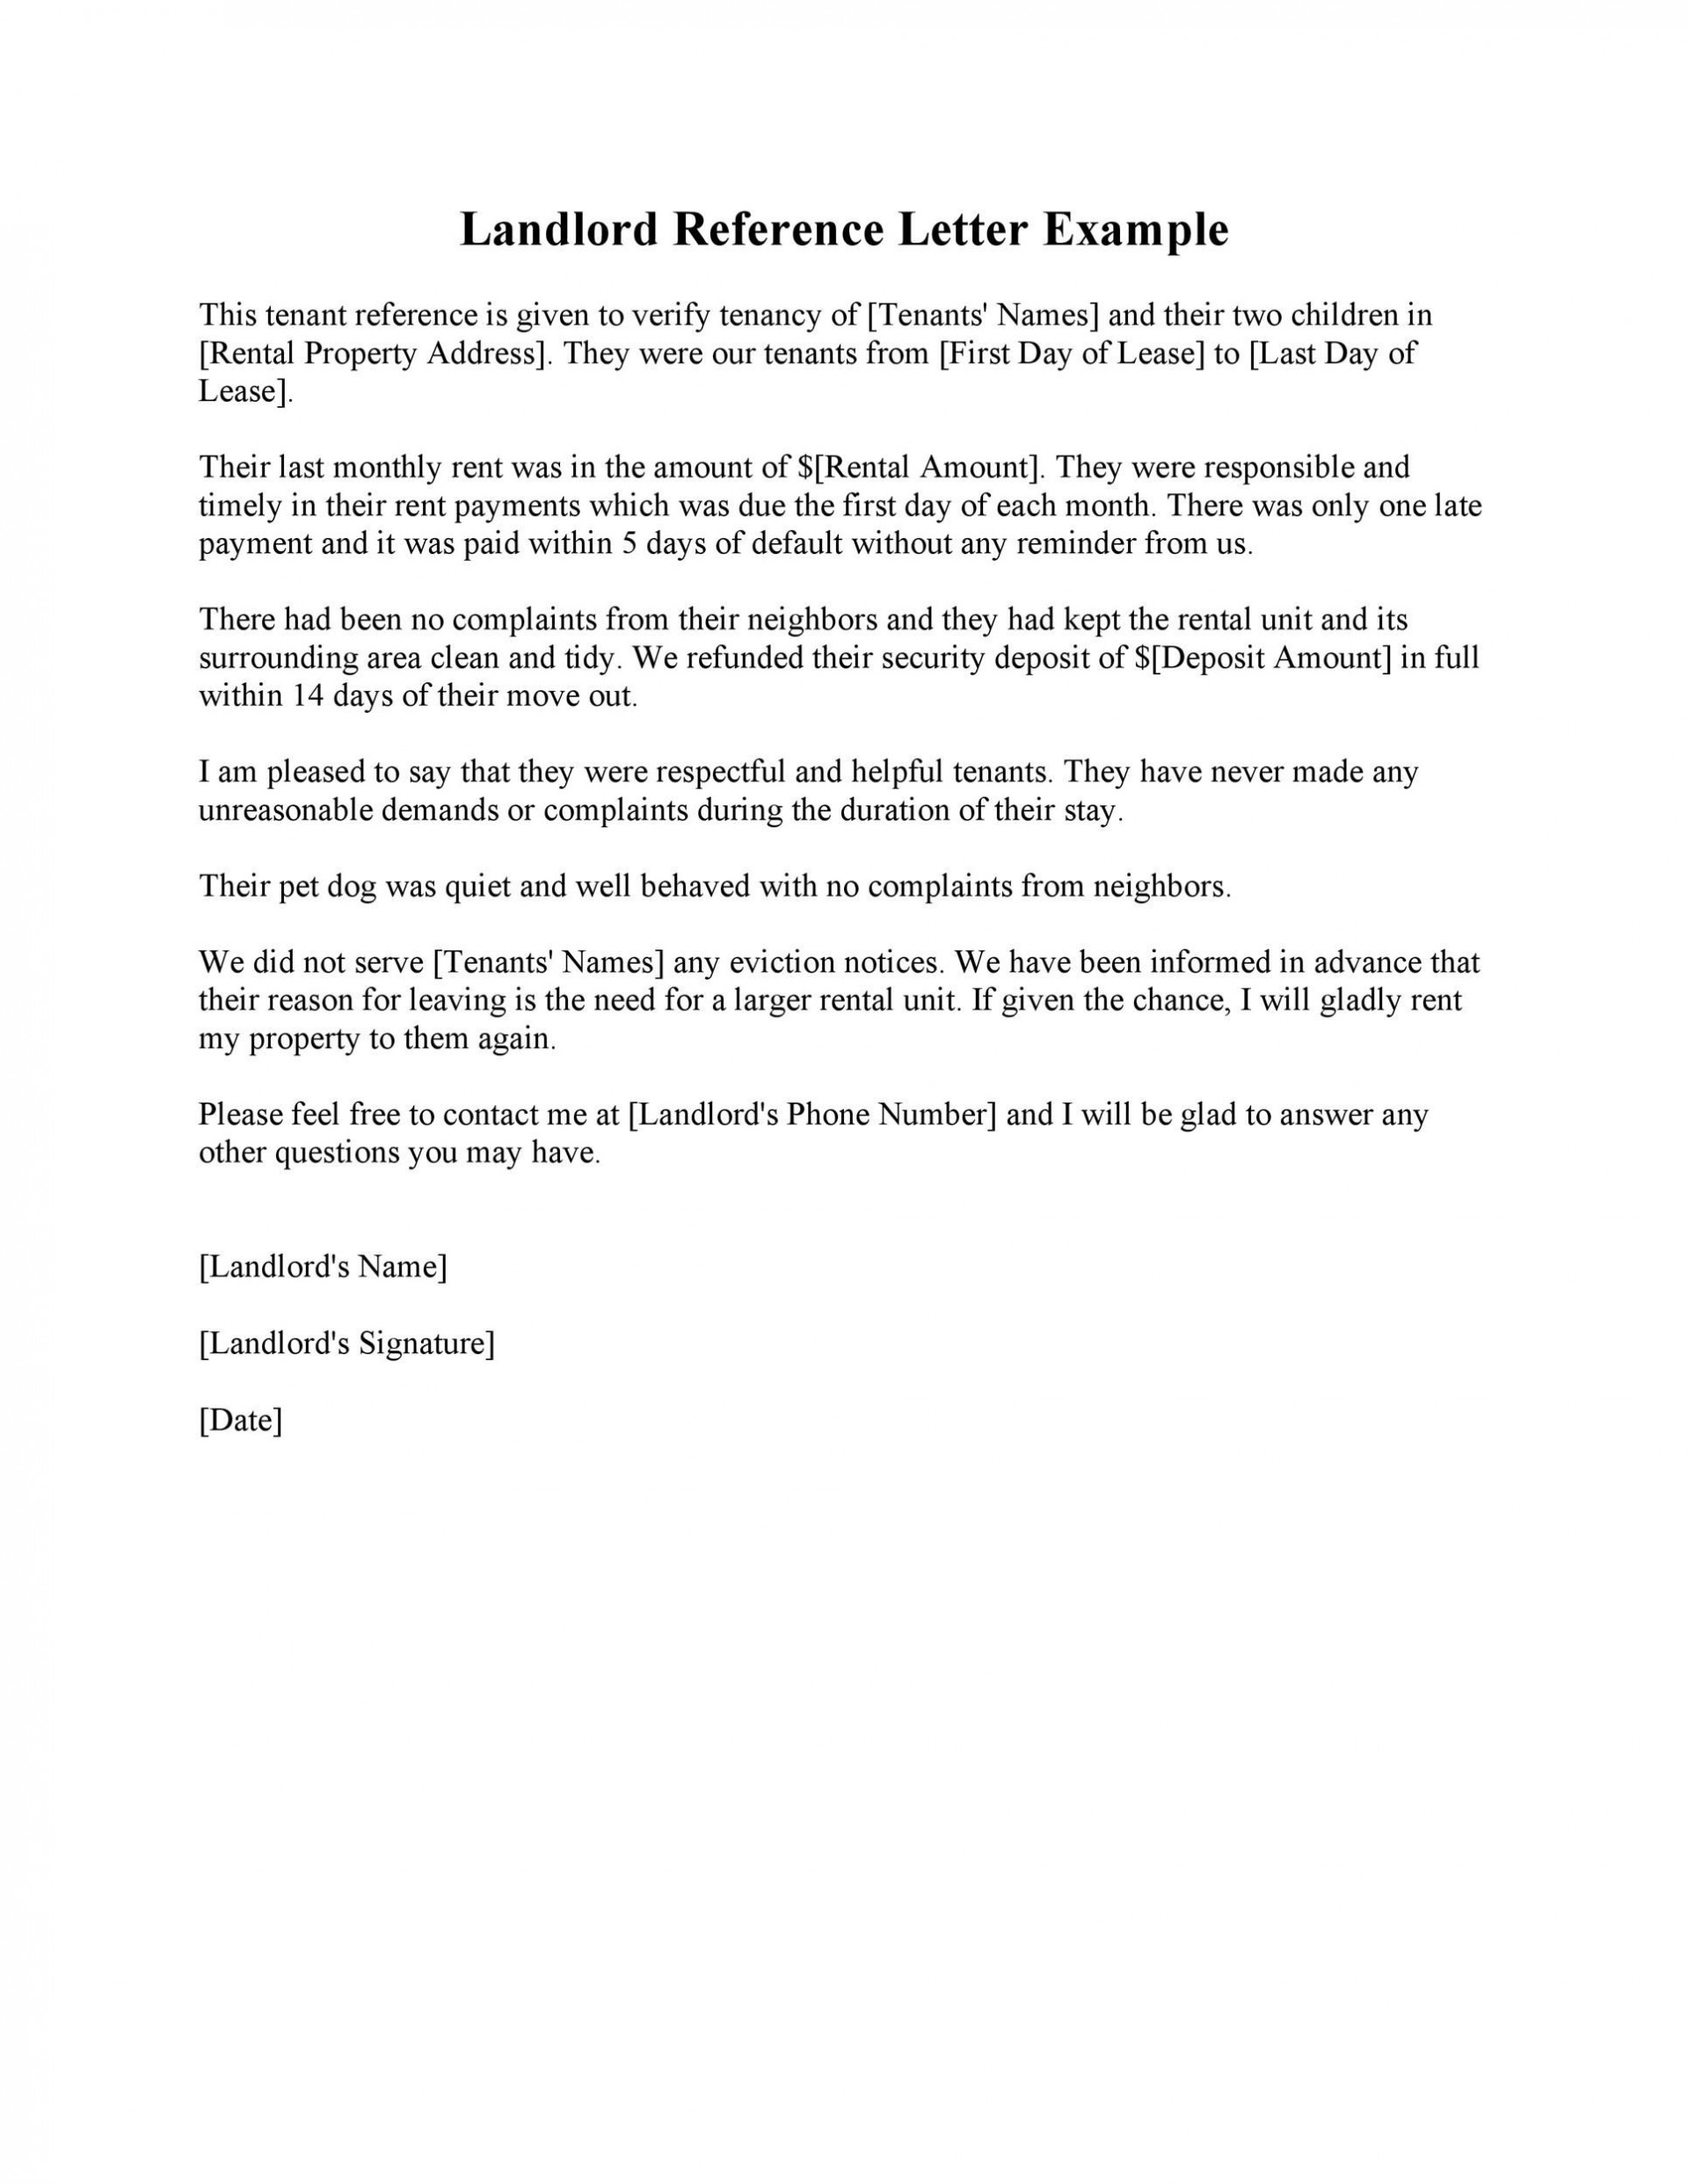 003 Best Free Reference Letter Template For Landlord Image  Rental1920